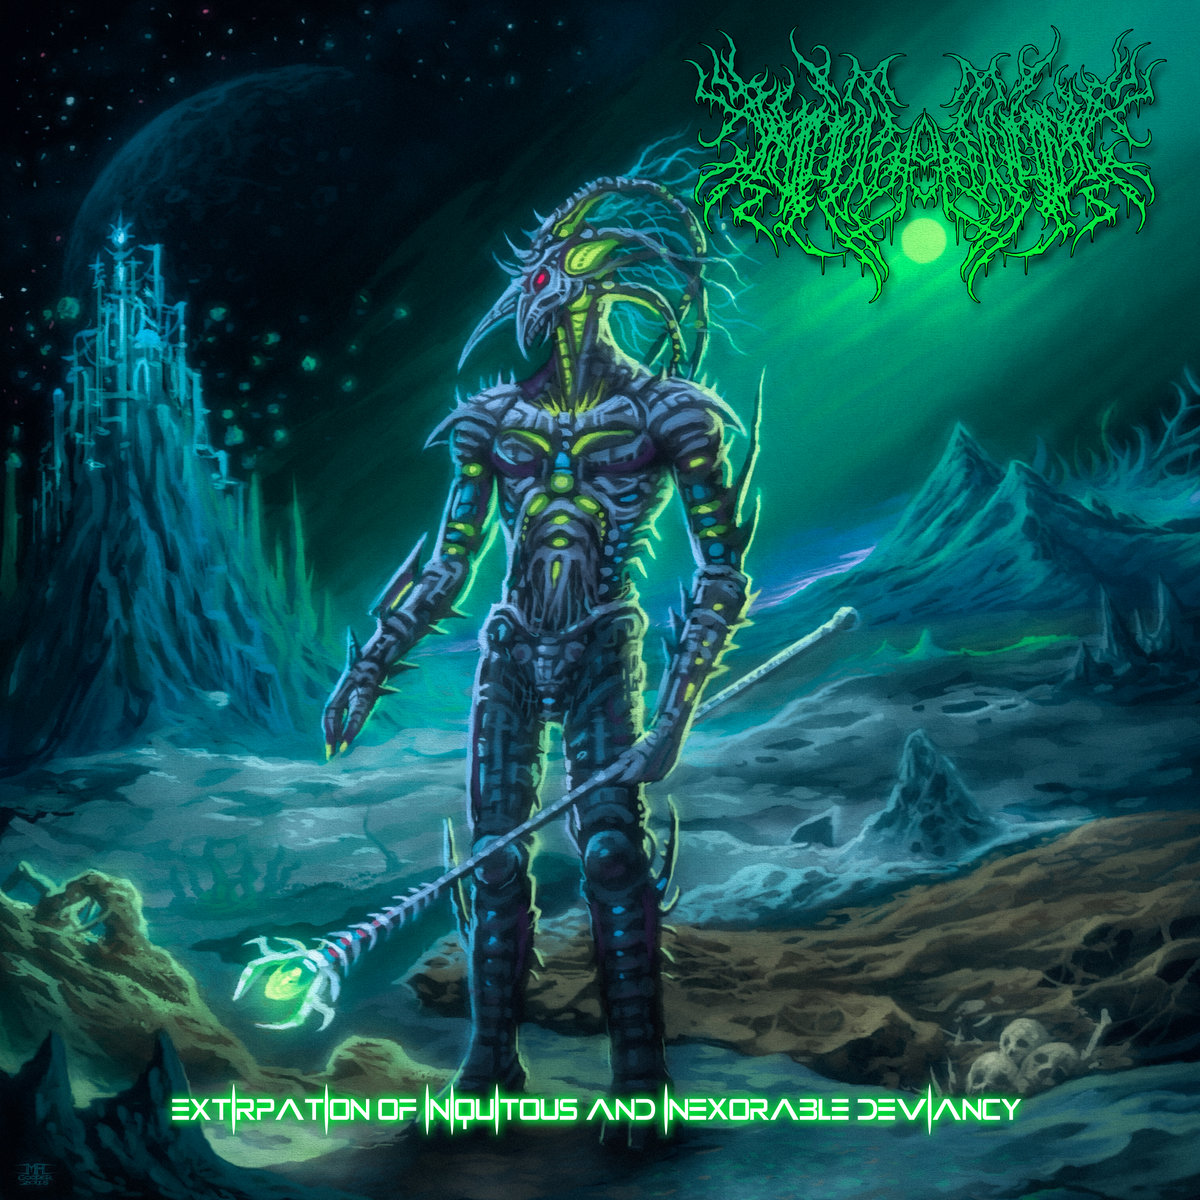 Insidious Asphyxiation - Extirpation of Iniquitous and Inexorable Deviancy (2021) [FLAC] Download